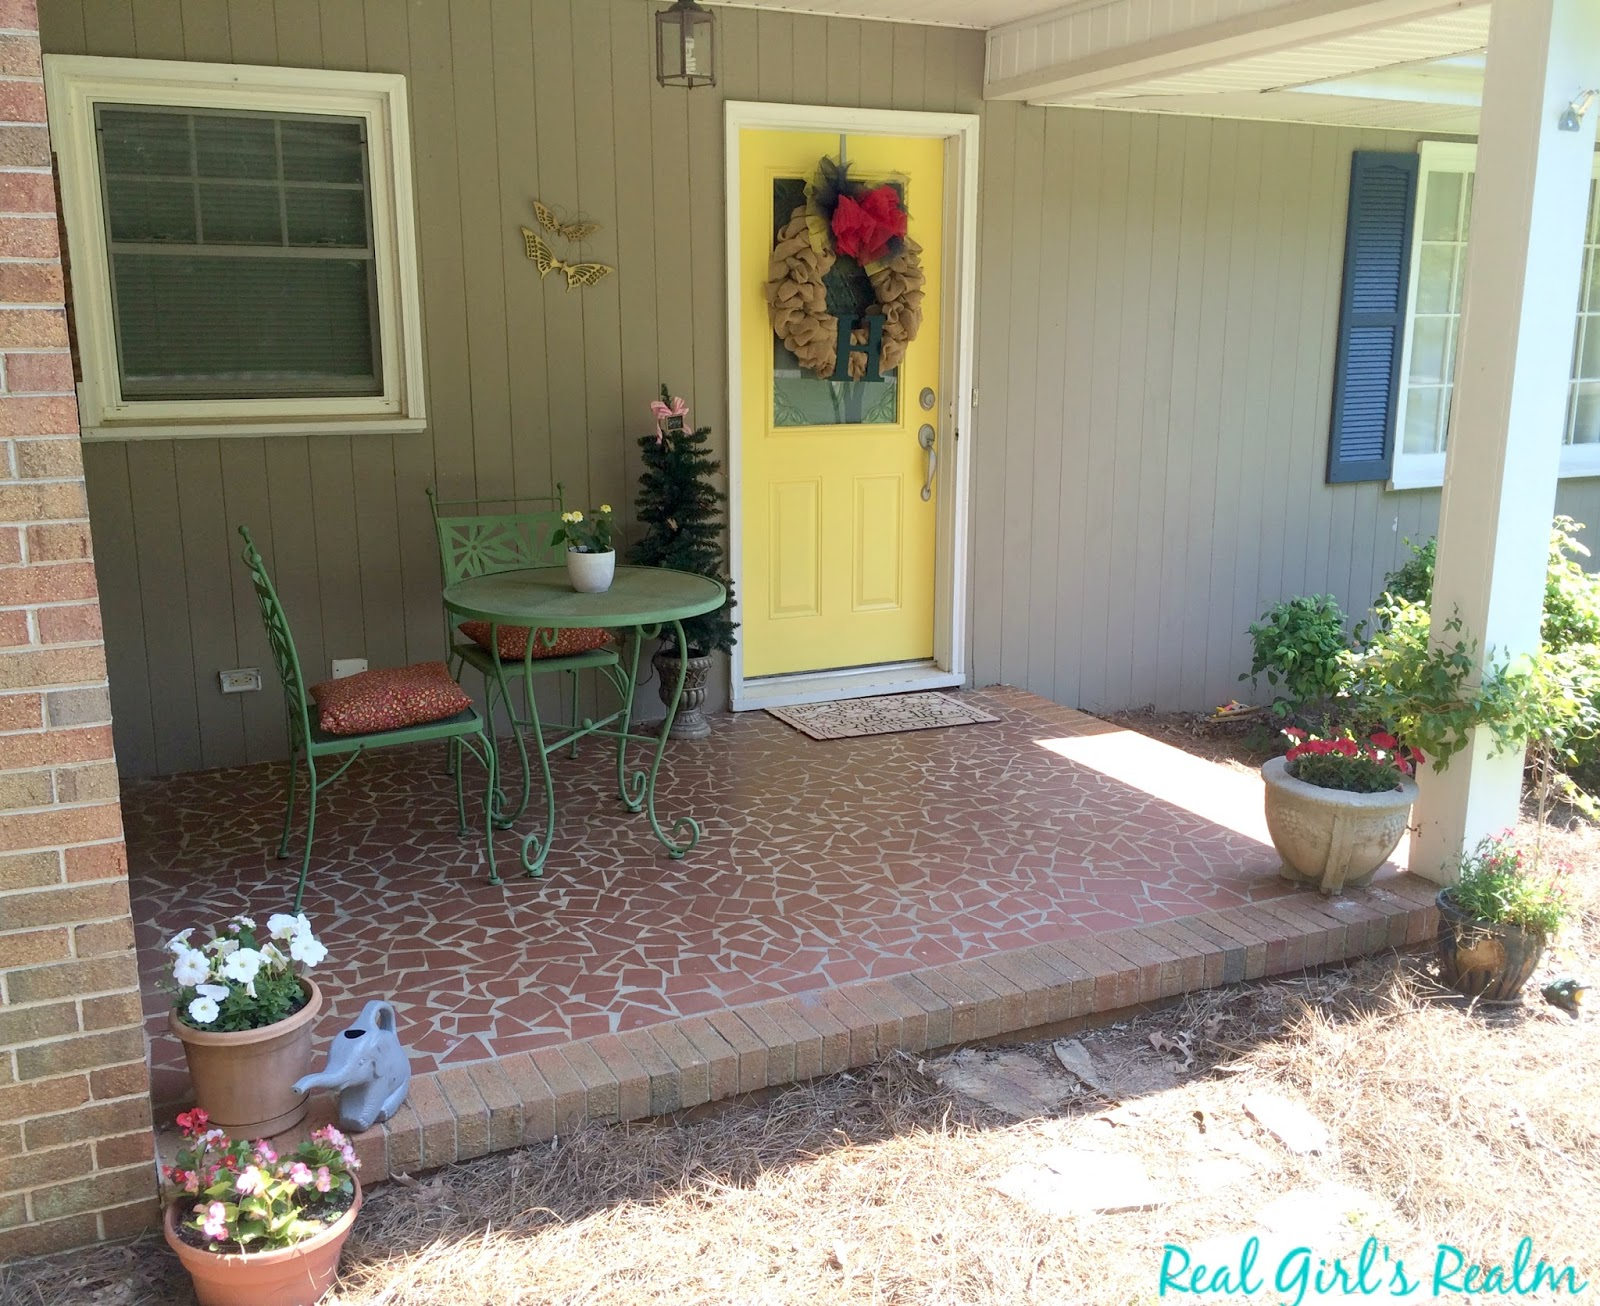 Our Front Porch Is Small And Only Has Room For A Bistro Set Which Why We Do Not Sit Out There Very Often Since People See It From The Road